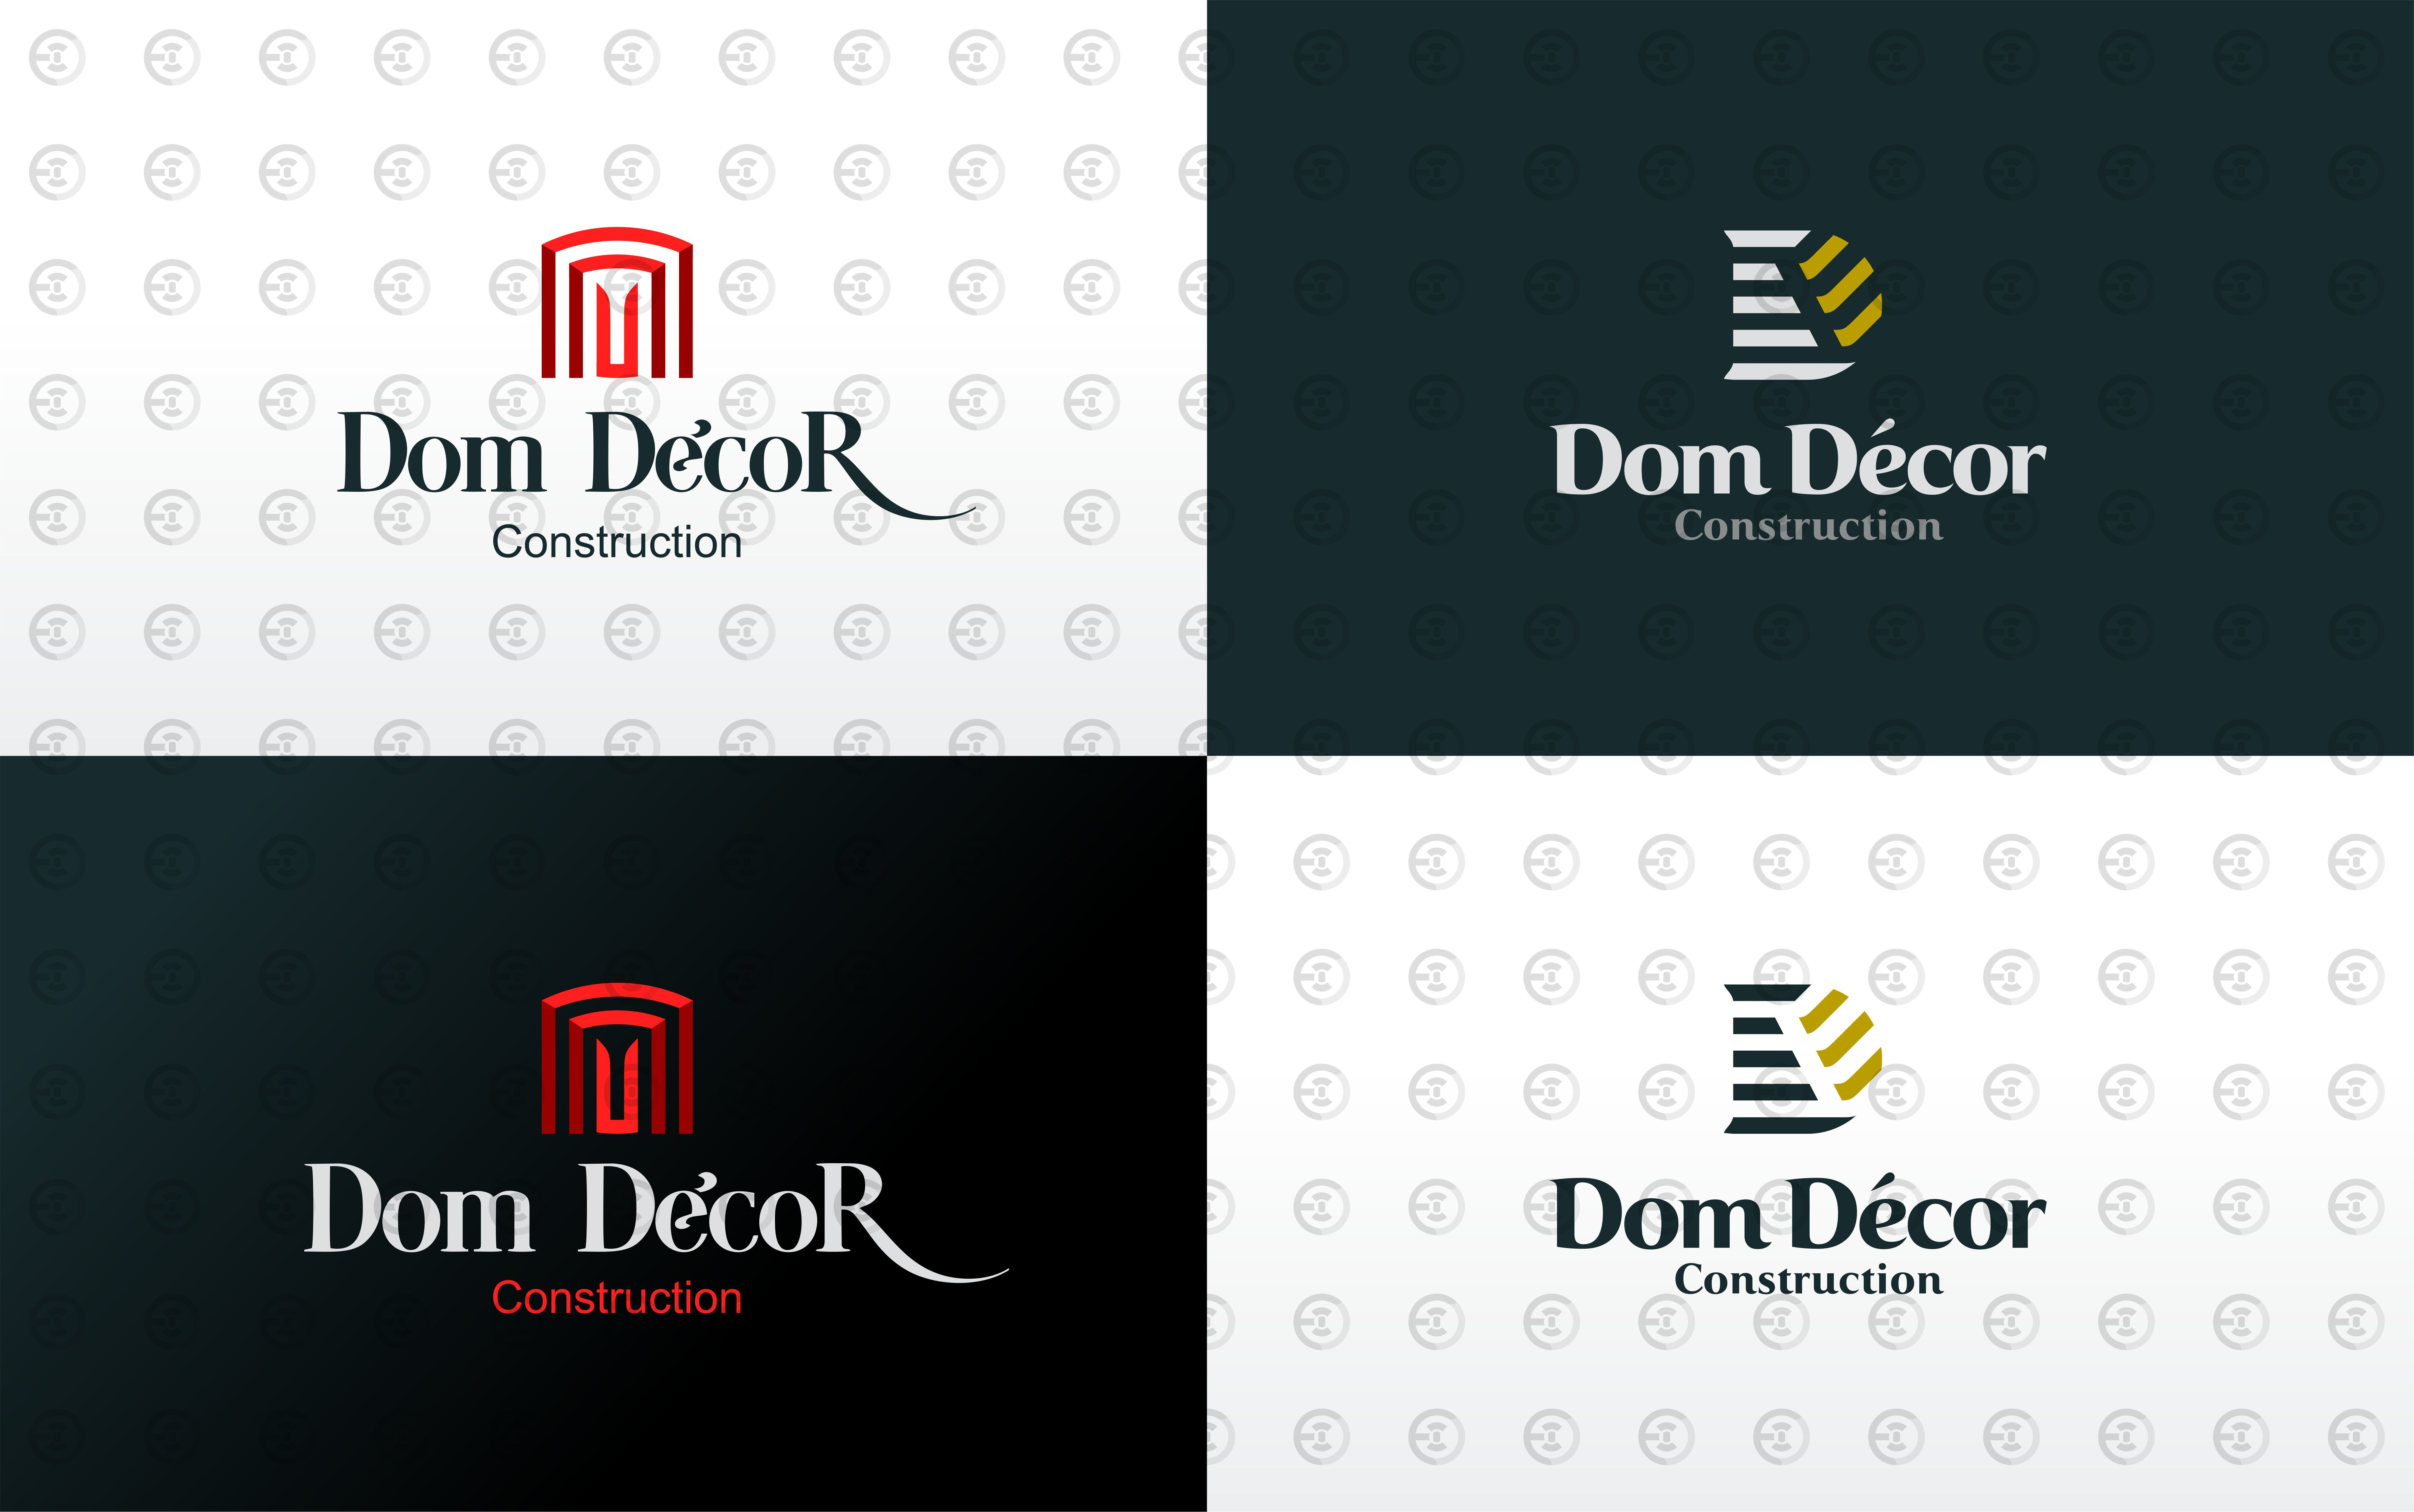 domdecor.jpg